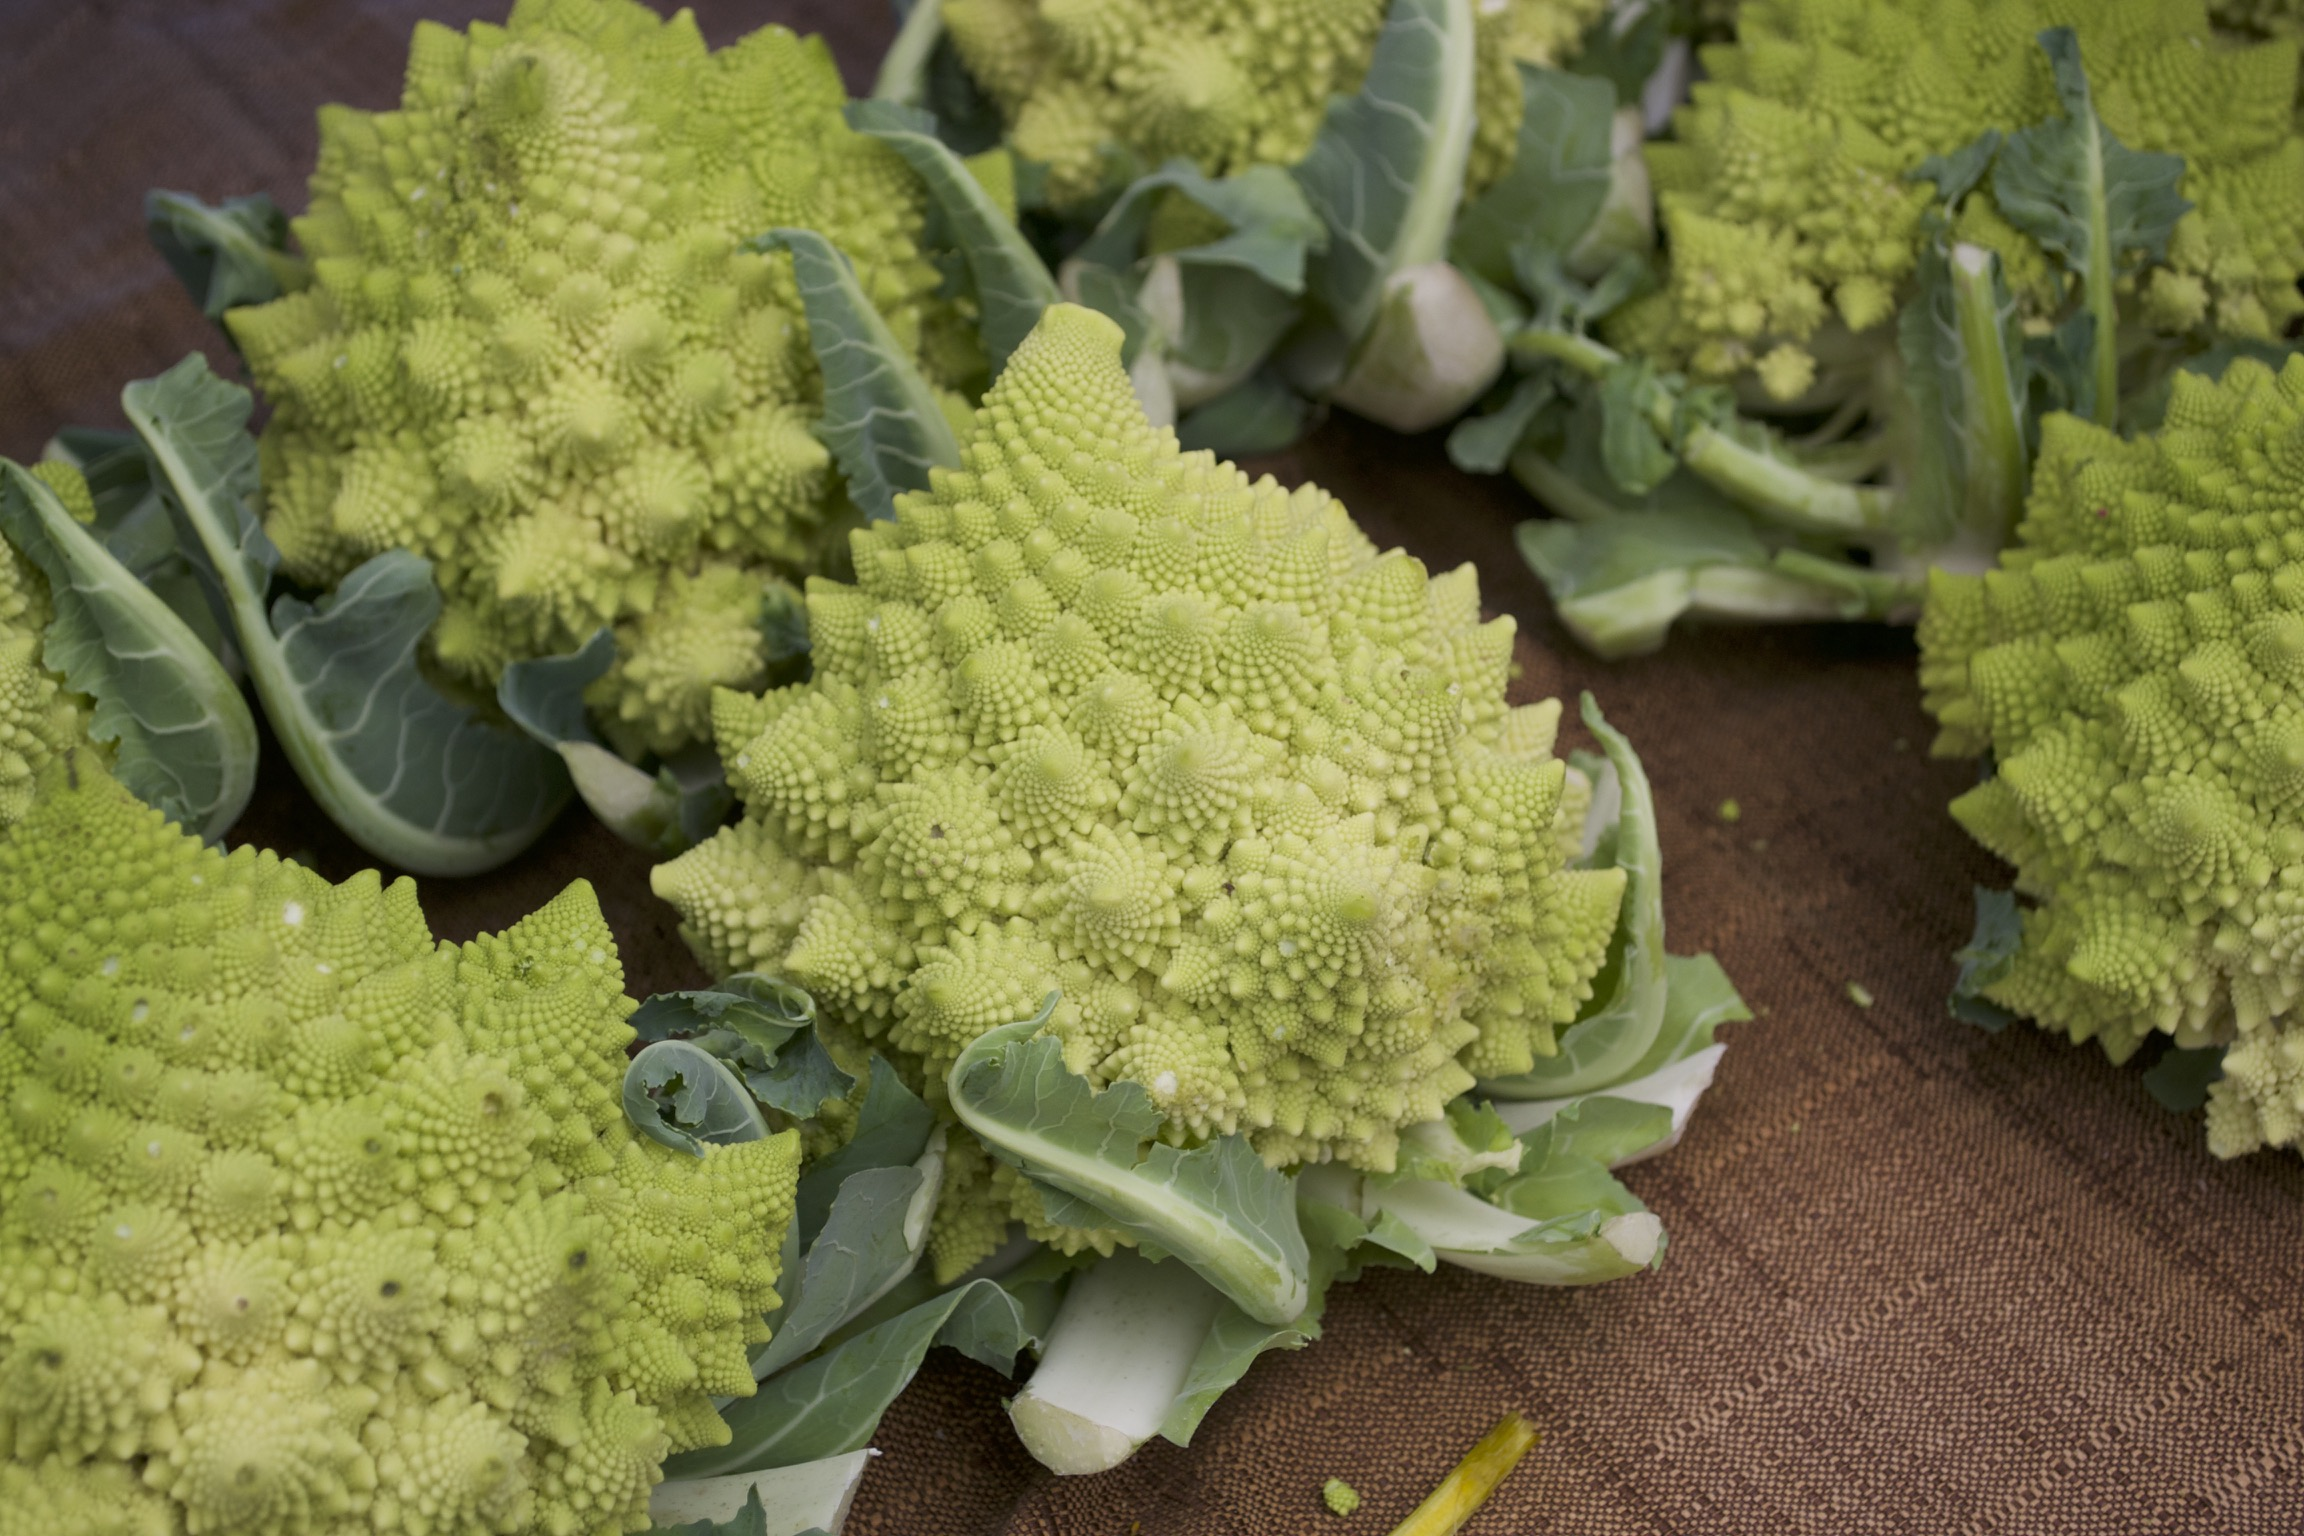 Light green fractal broccoli.